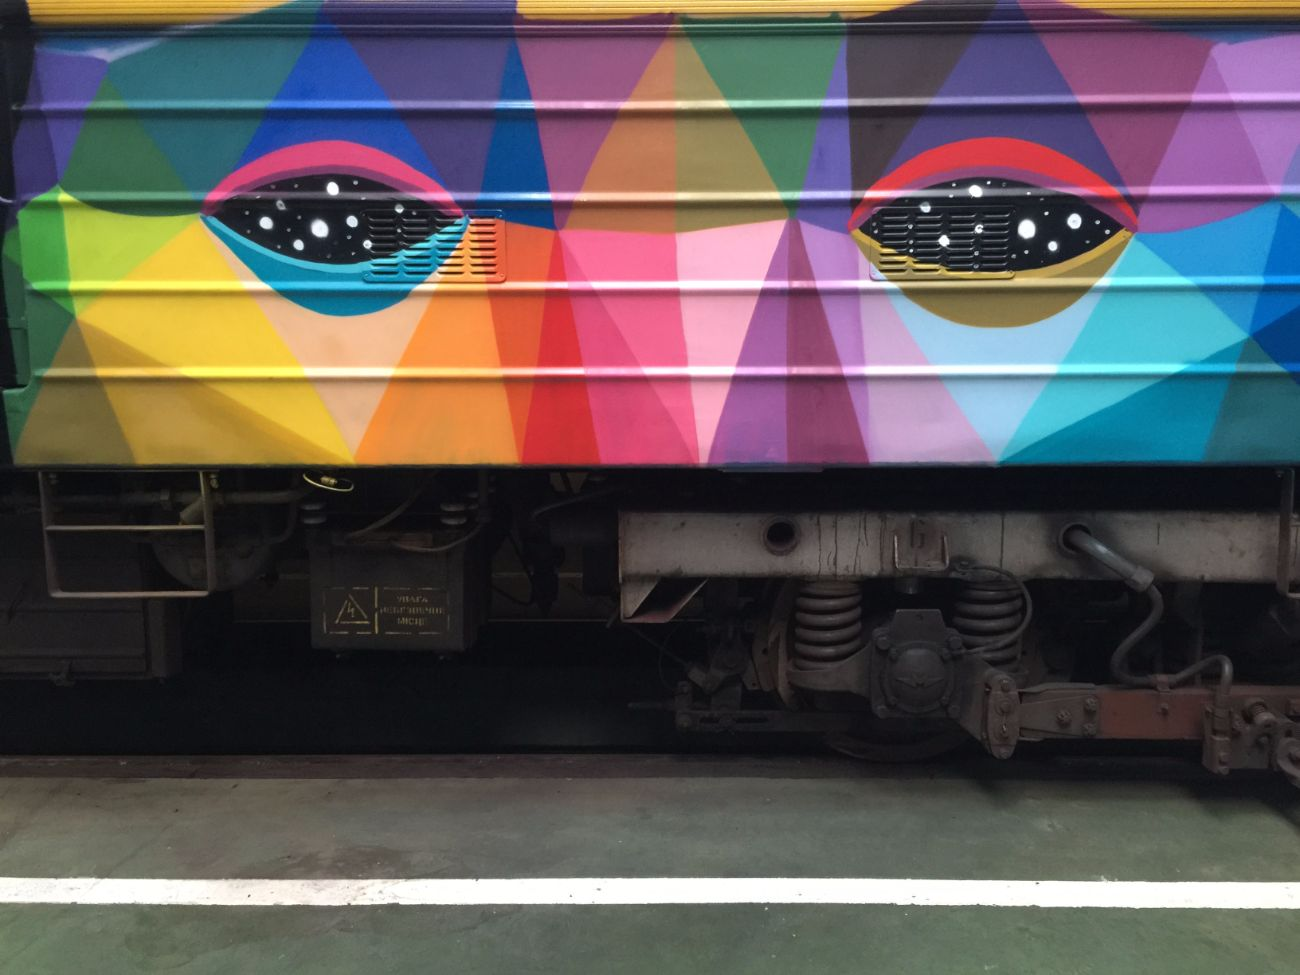 okuda-san-miguels-5-car-train-in-kiev-ukraine-thevandallist-12